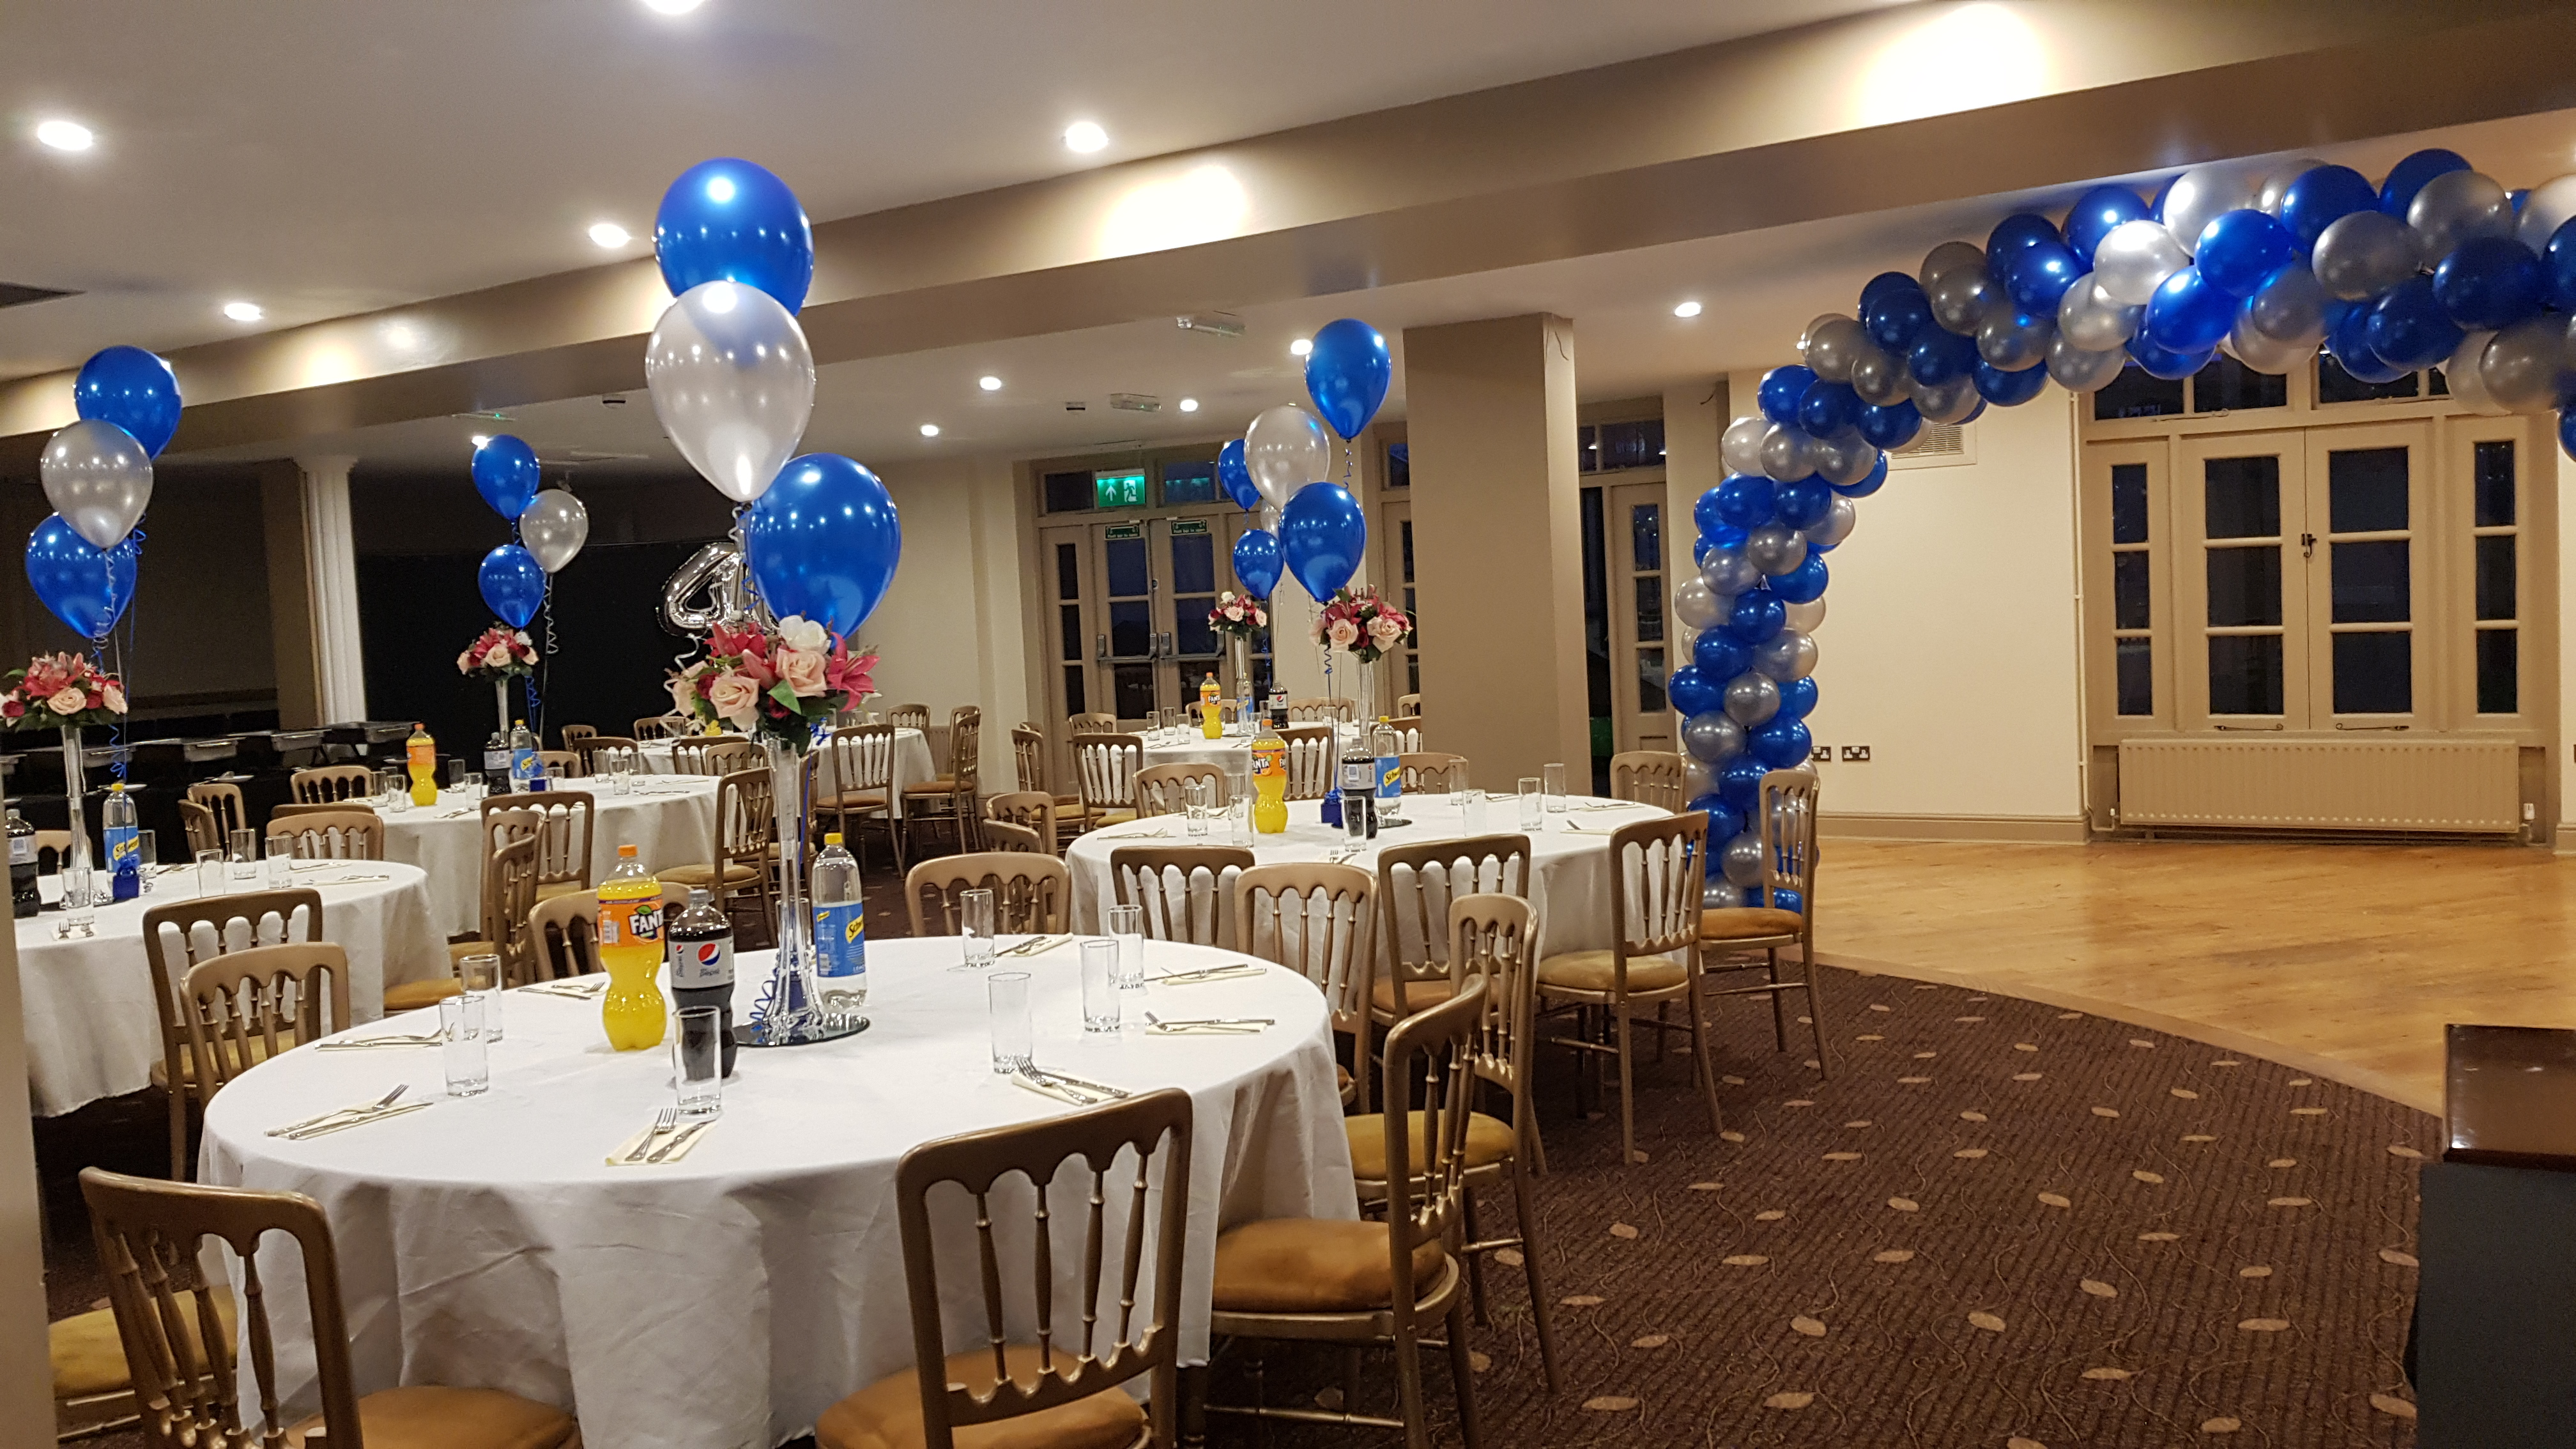 Blue and silver complete room decor available from Cardiff Balloons